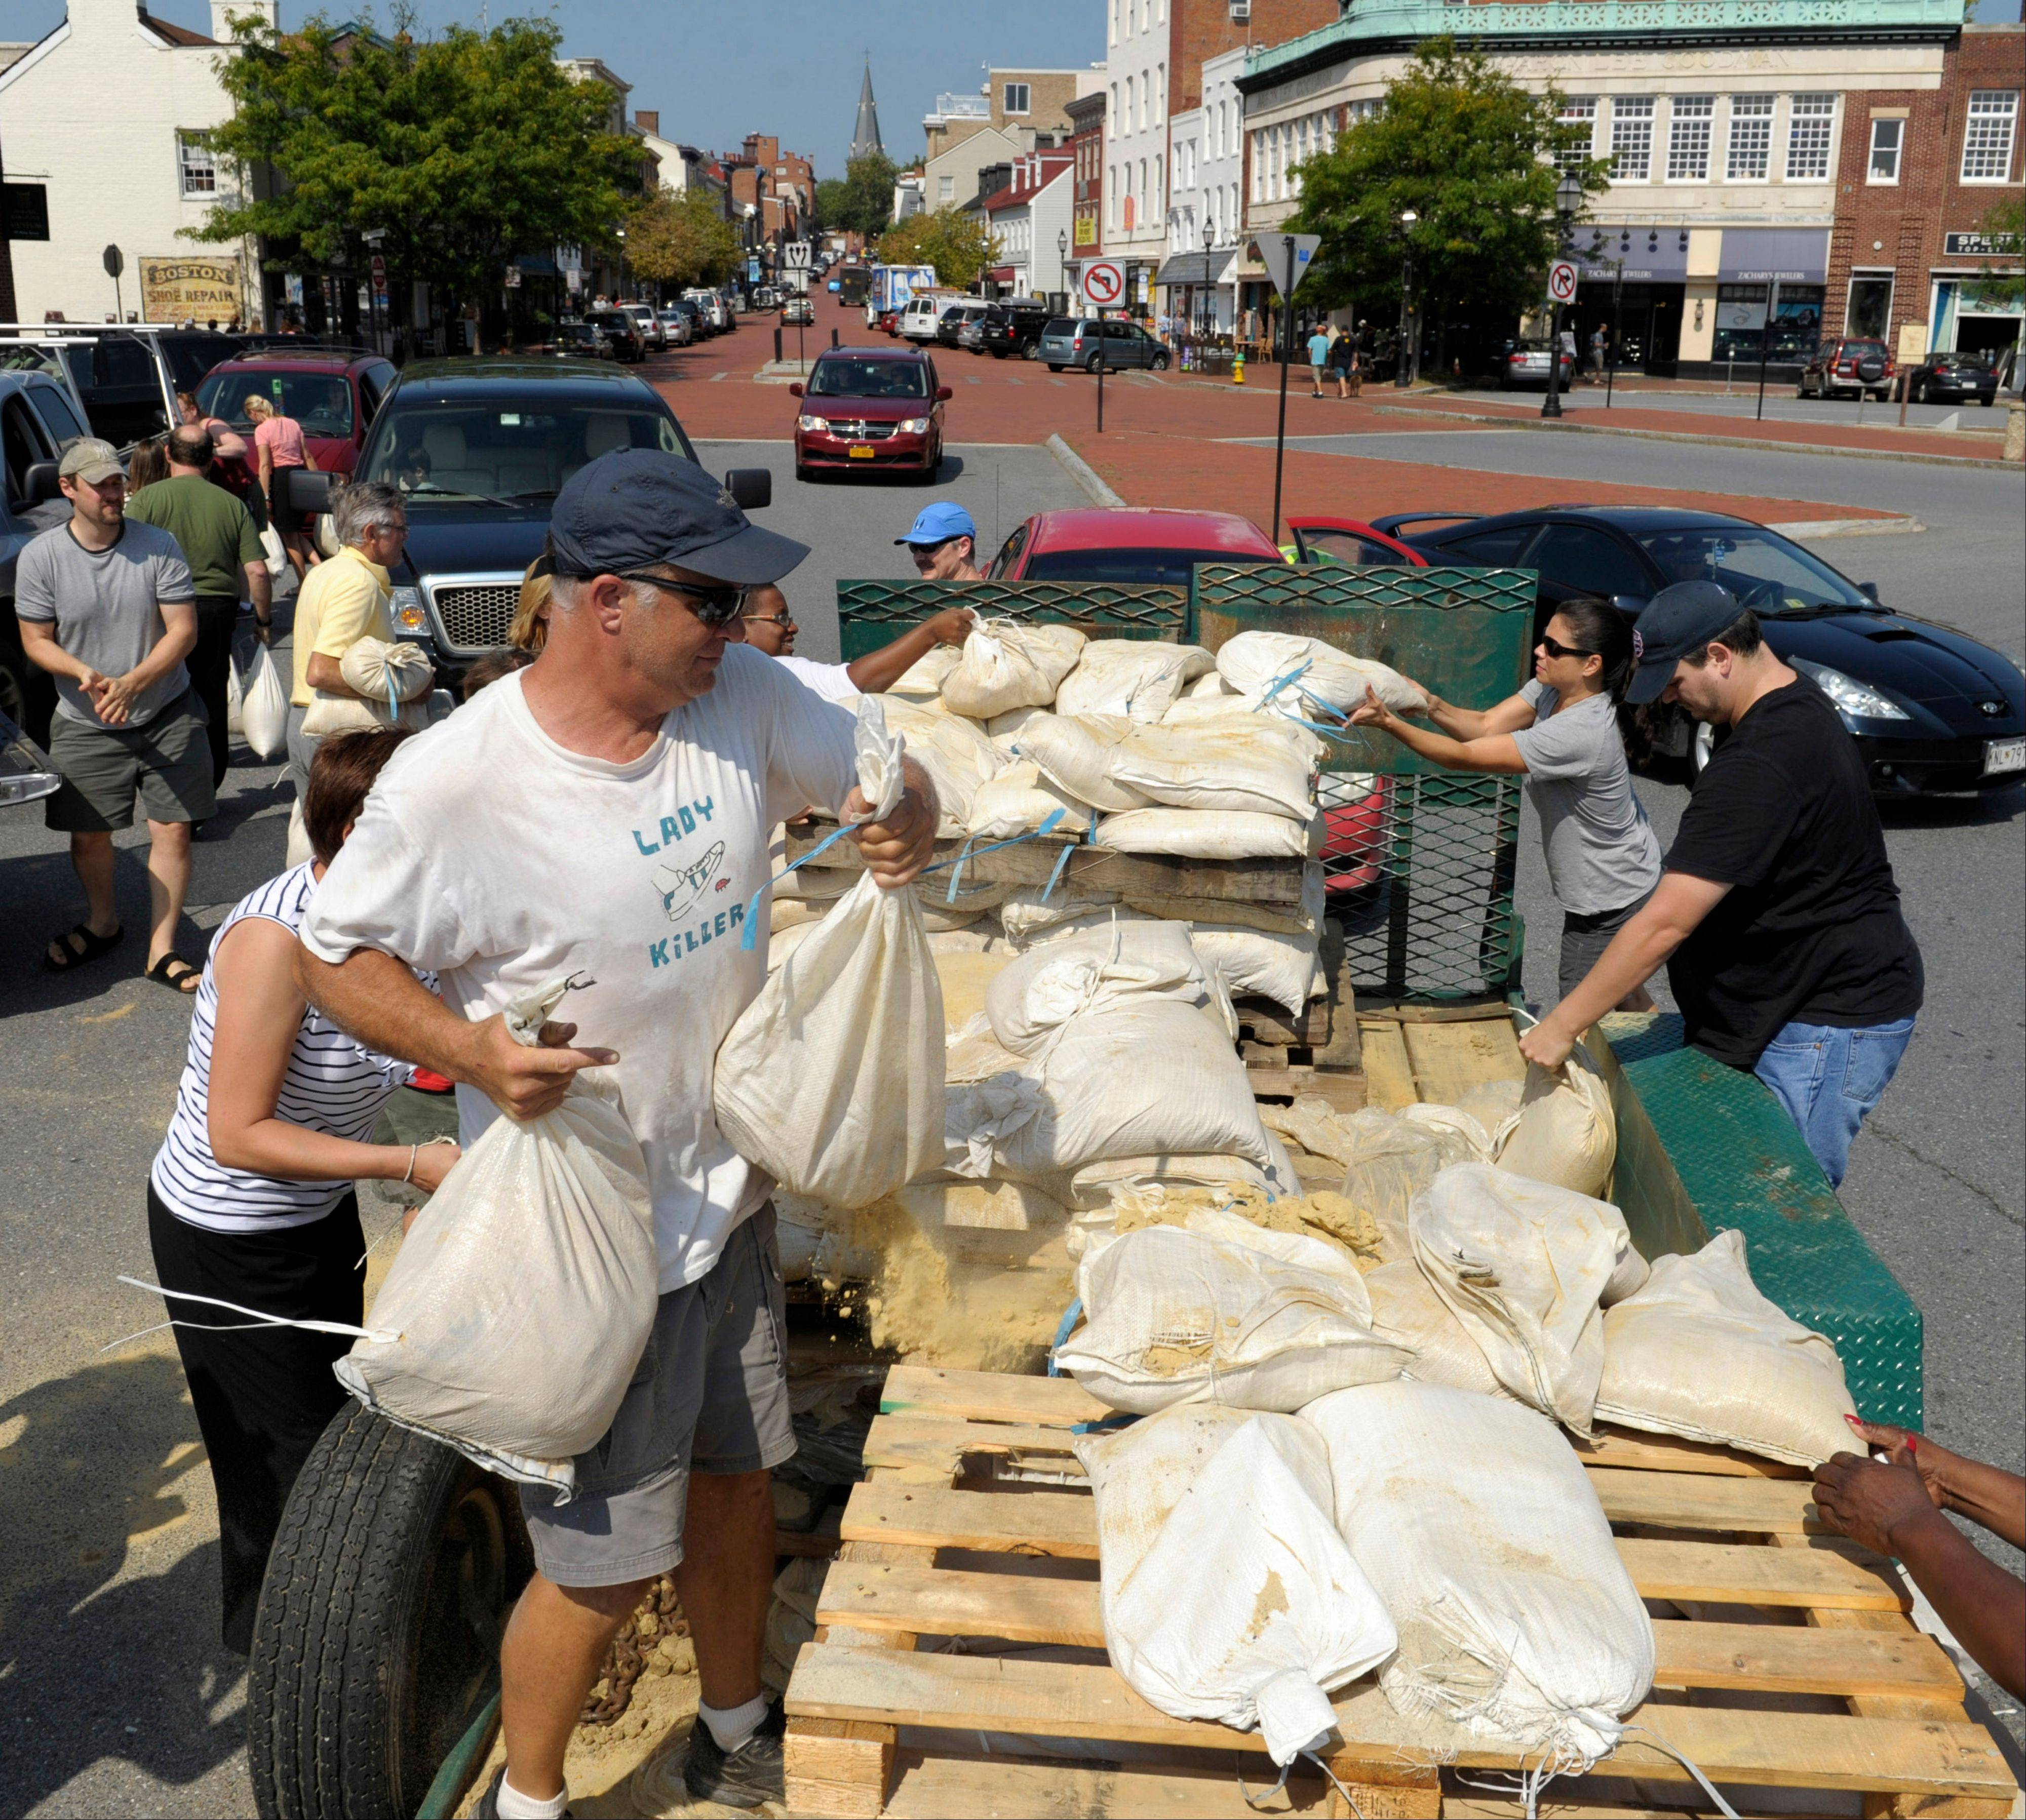 People take sandbags off a truck as residents prepare for Hurricane Irene in Annapolis, Md., Friday, Aug. 26, 2011.